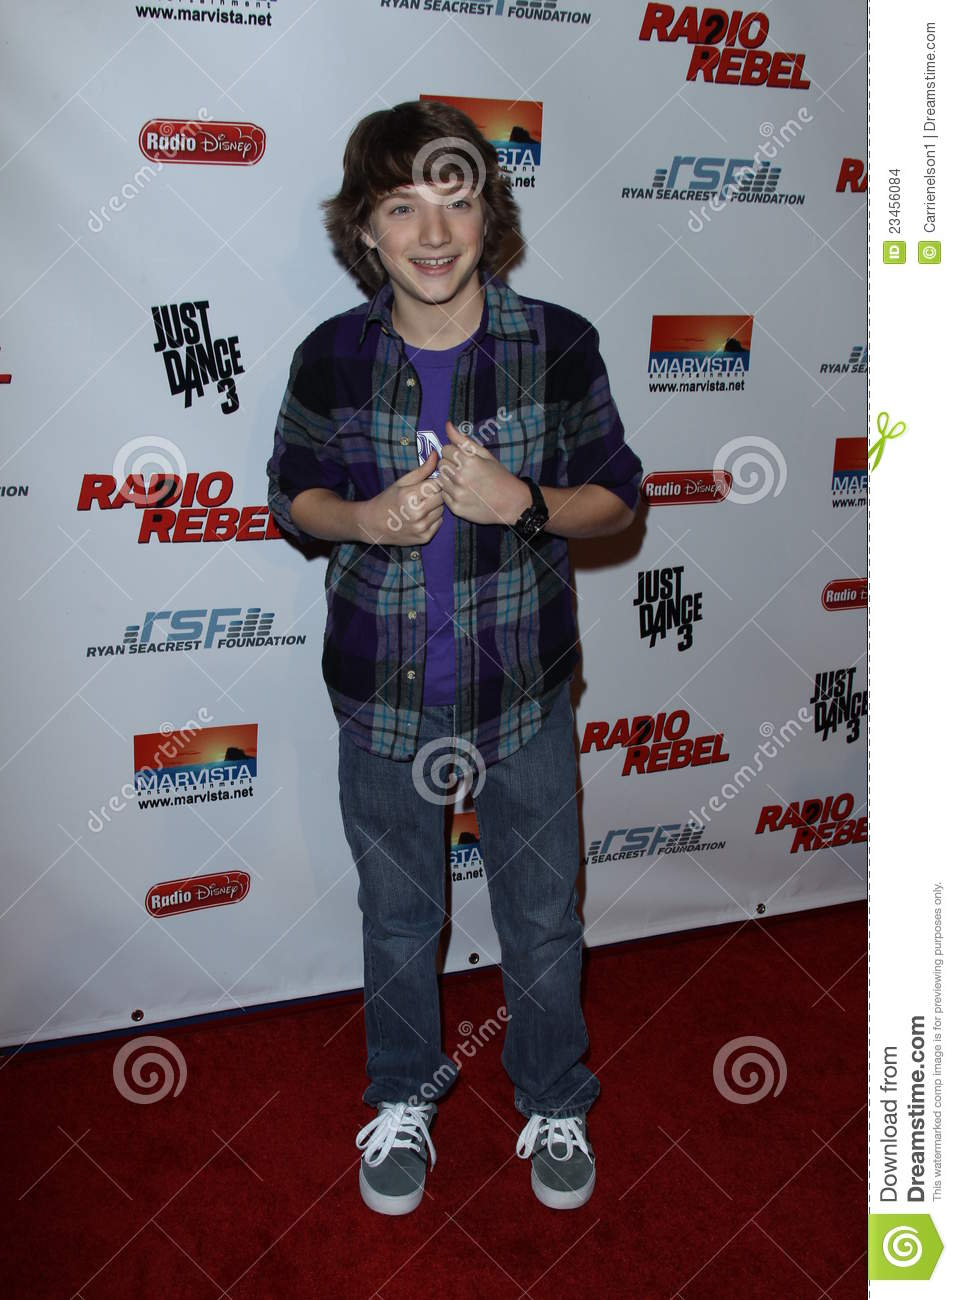 jake short wikijake short height and weight, jake short height in feet, jake short 2017, jake short film, jake short wiki, jake short height, jake short instagram, jake short 2016, jake short and rowan blanchard, jake short teeth, jake short, jake short 2015, jake short 2014, jake short twitter, jake short his girlfriend, jake short singing, jake short and piper curda, jake short dating, jake short and paris berelc, jake short facebook